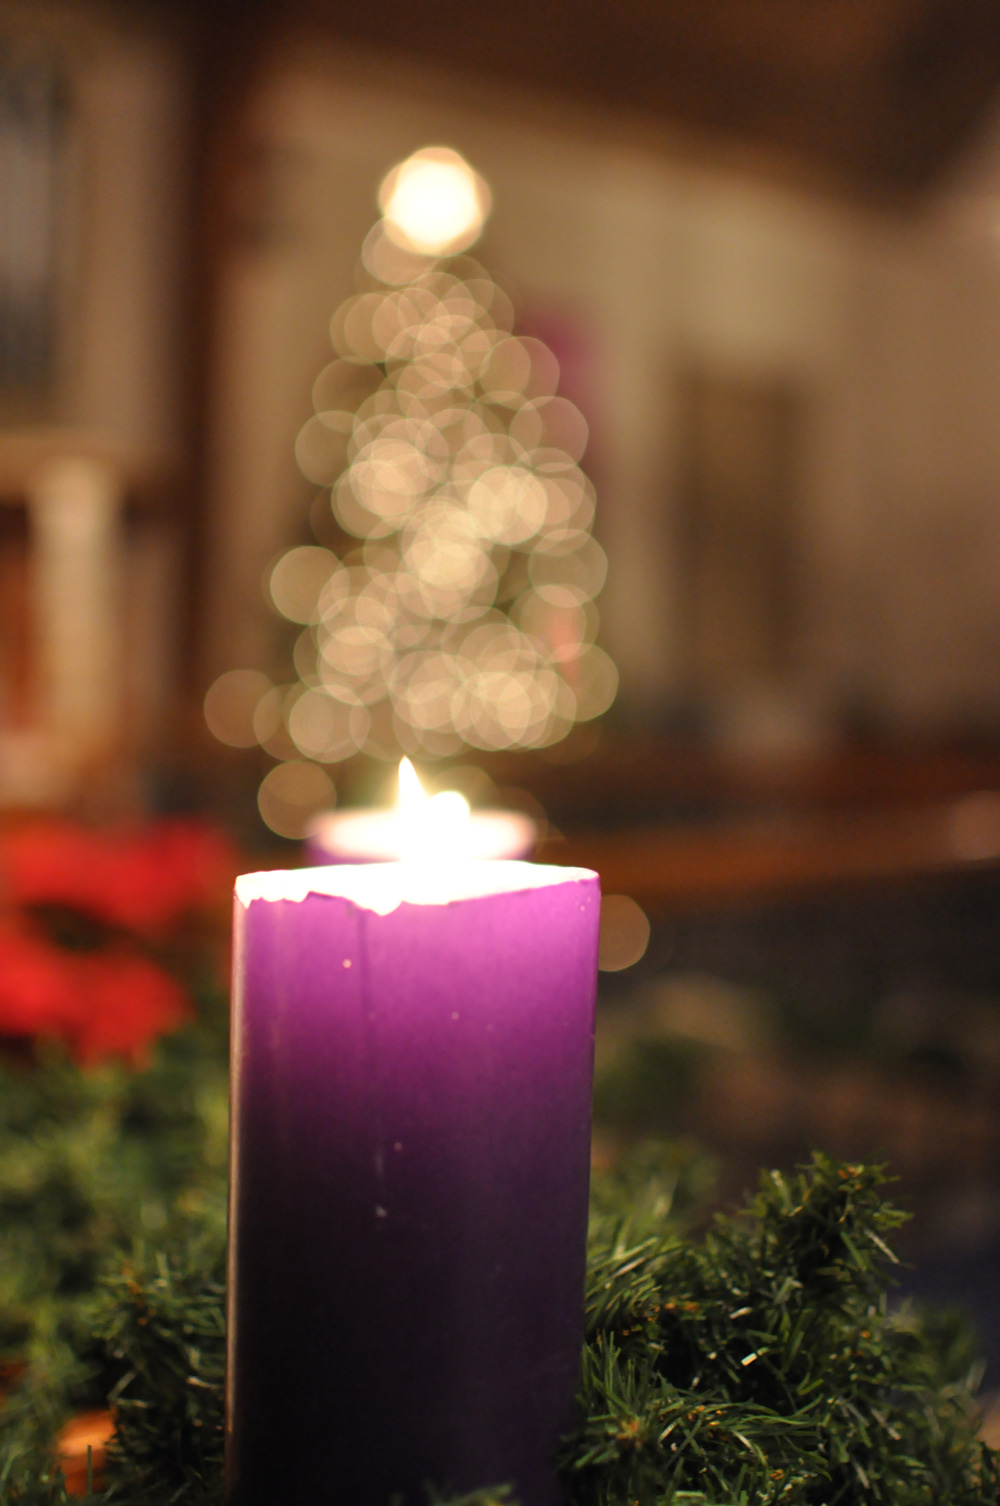 Advent candle at St. Matthew United Methodist Church in Fort Worth, Texas.